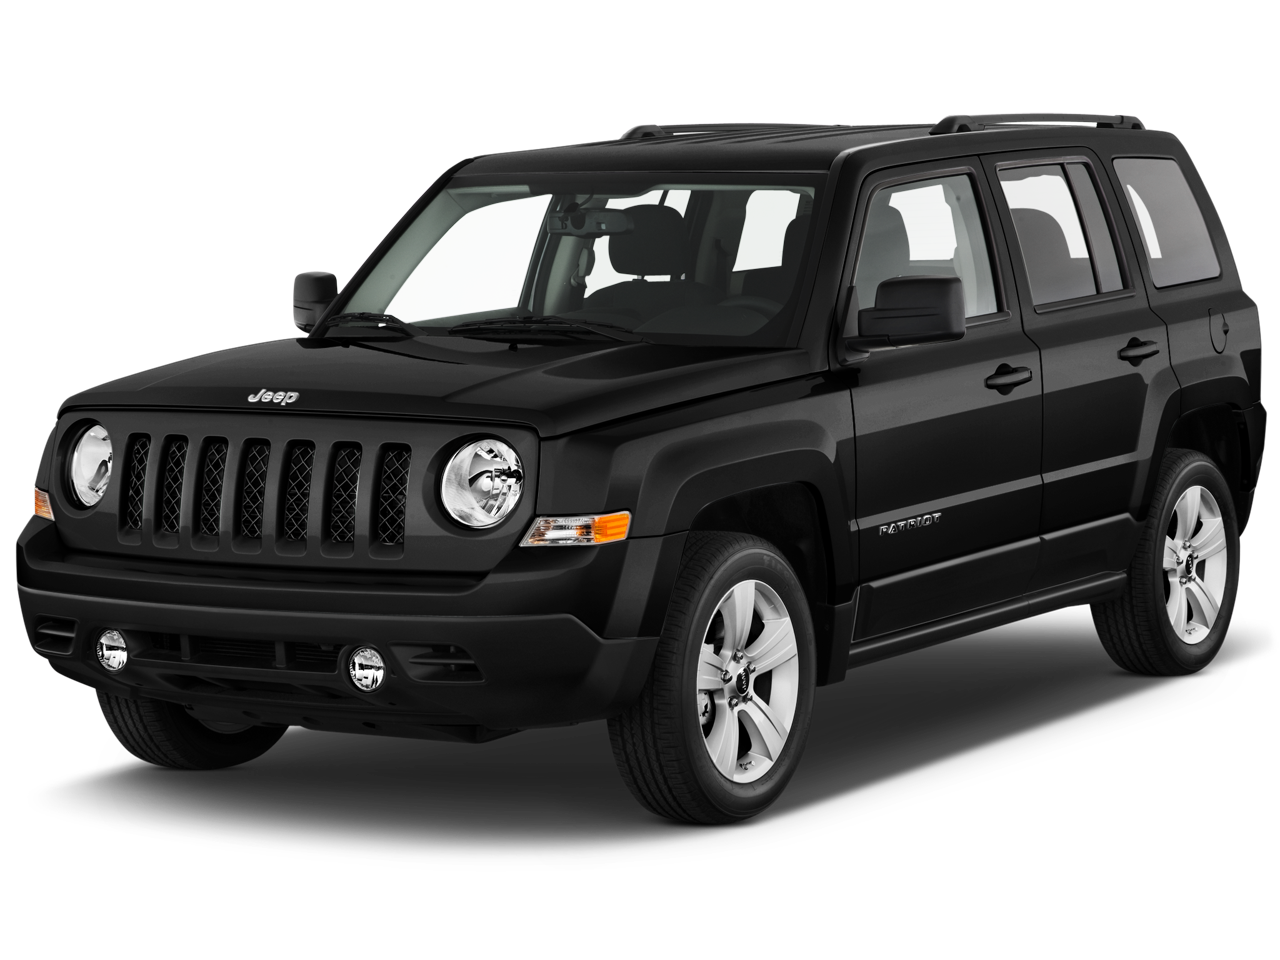 used 2016 jeep patriot sport - gainesville ga - hayes chrysler